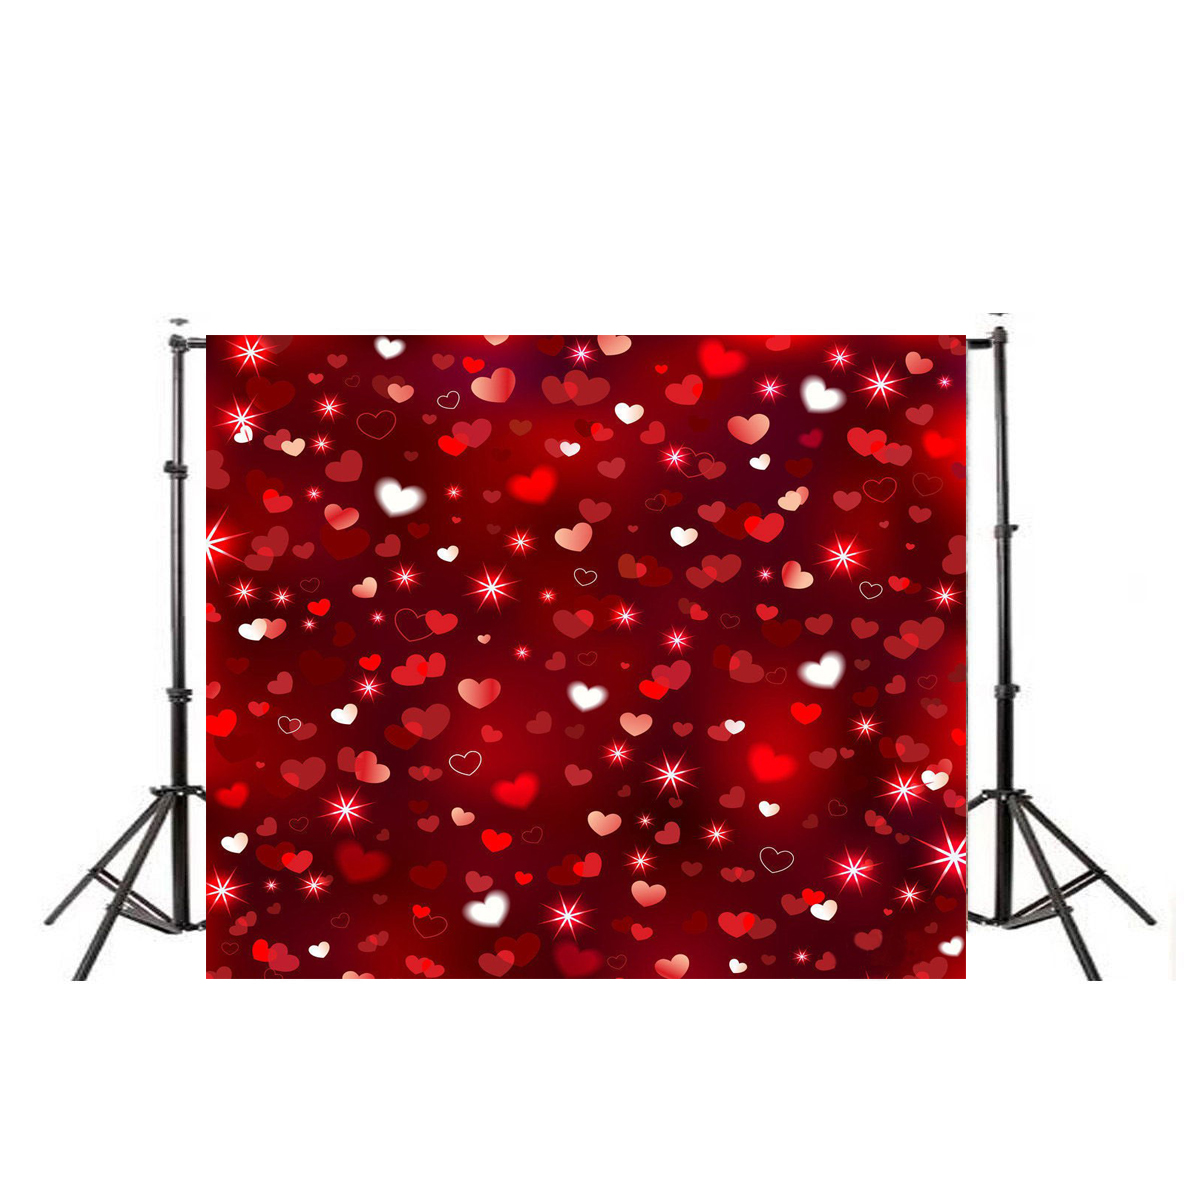 10X10FT Vinyl Glitter Love Heart Photography Studio Backdrop Wedding Photo Props